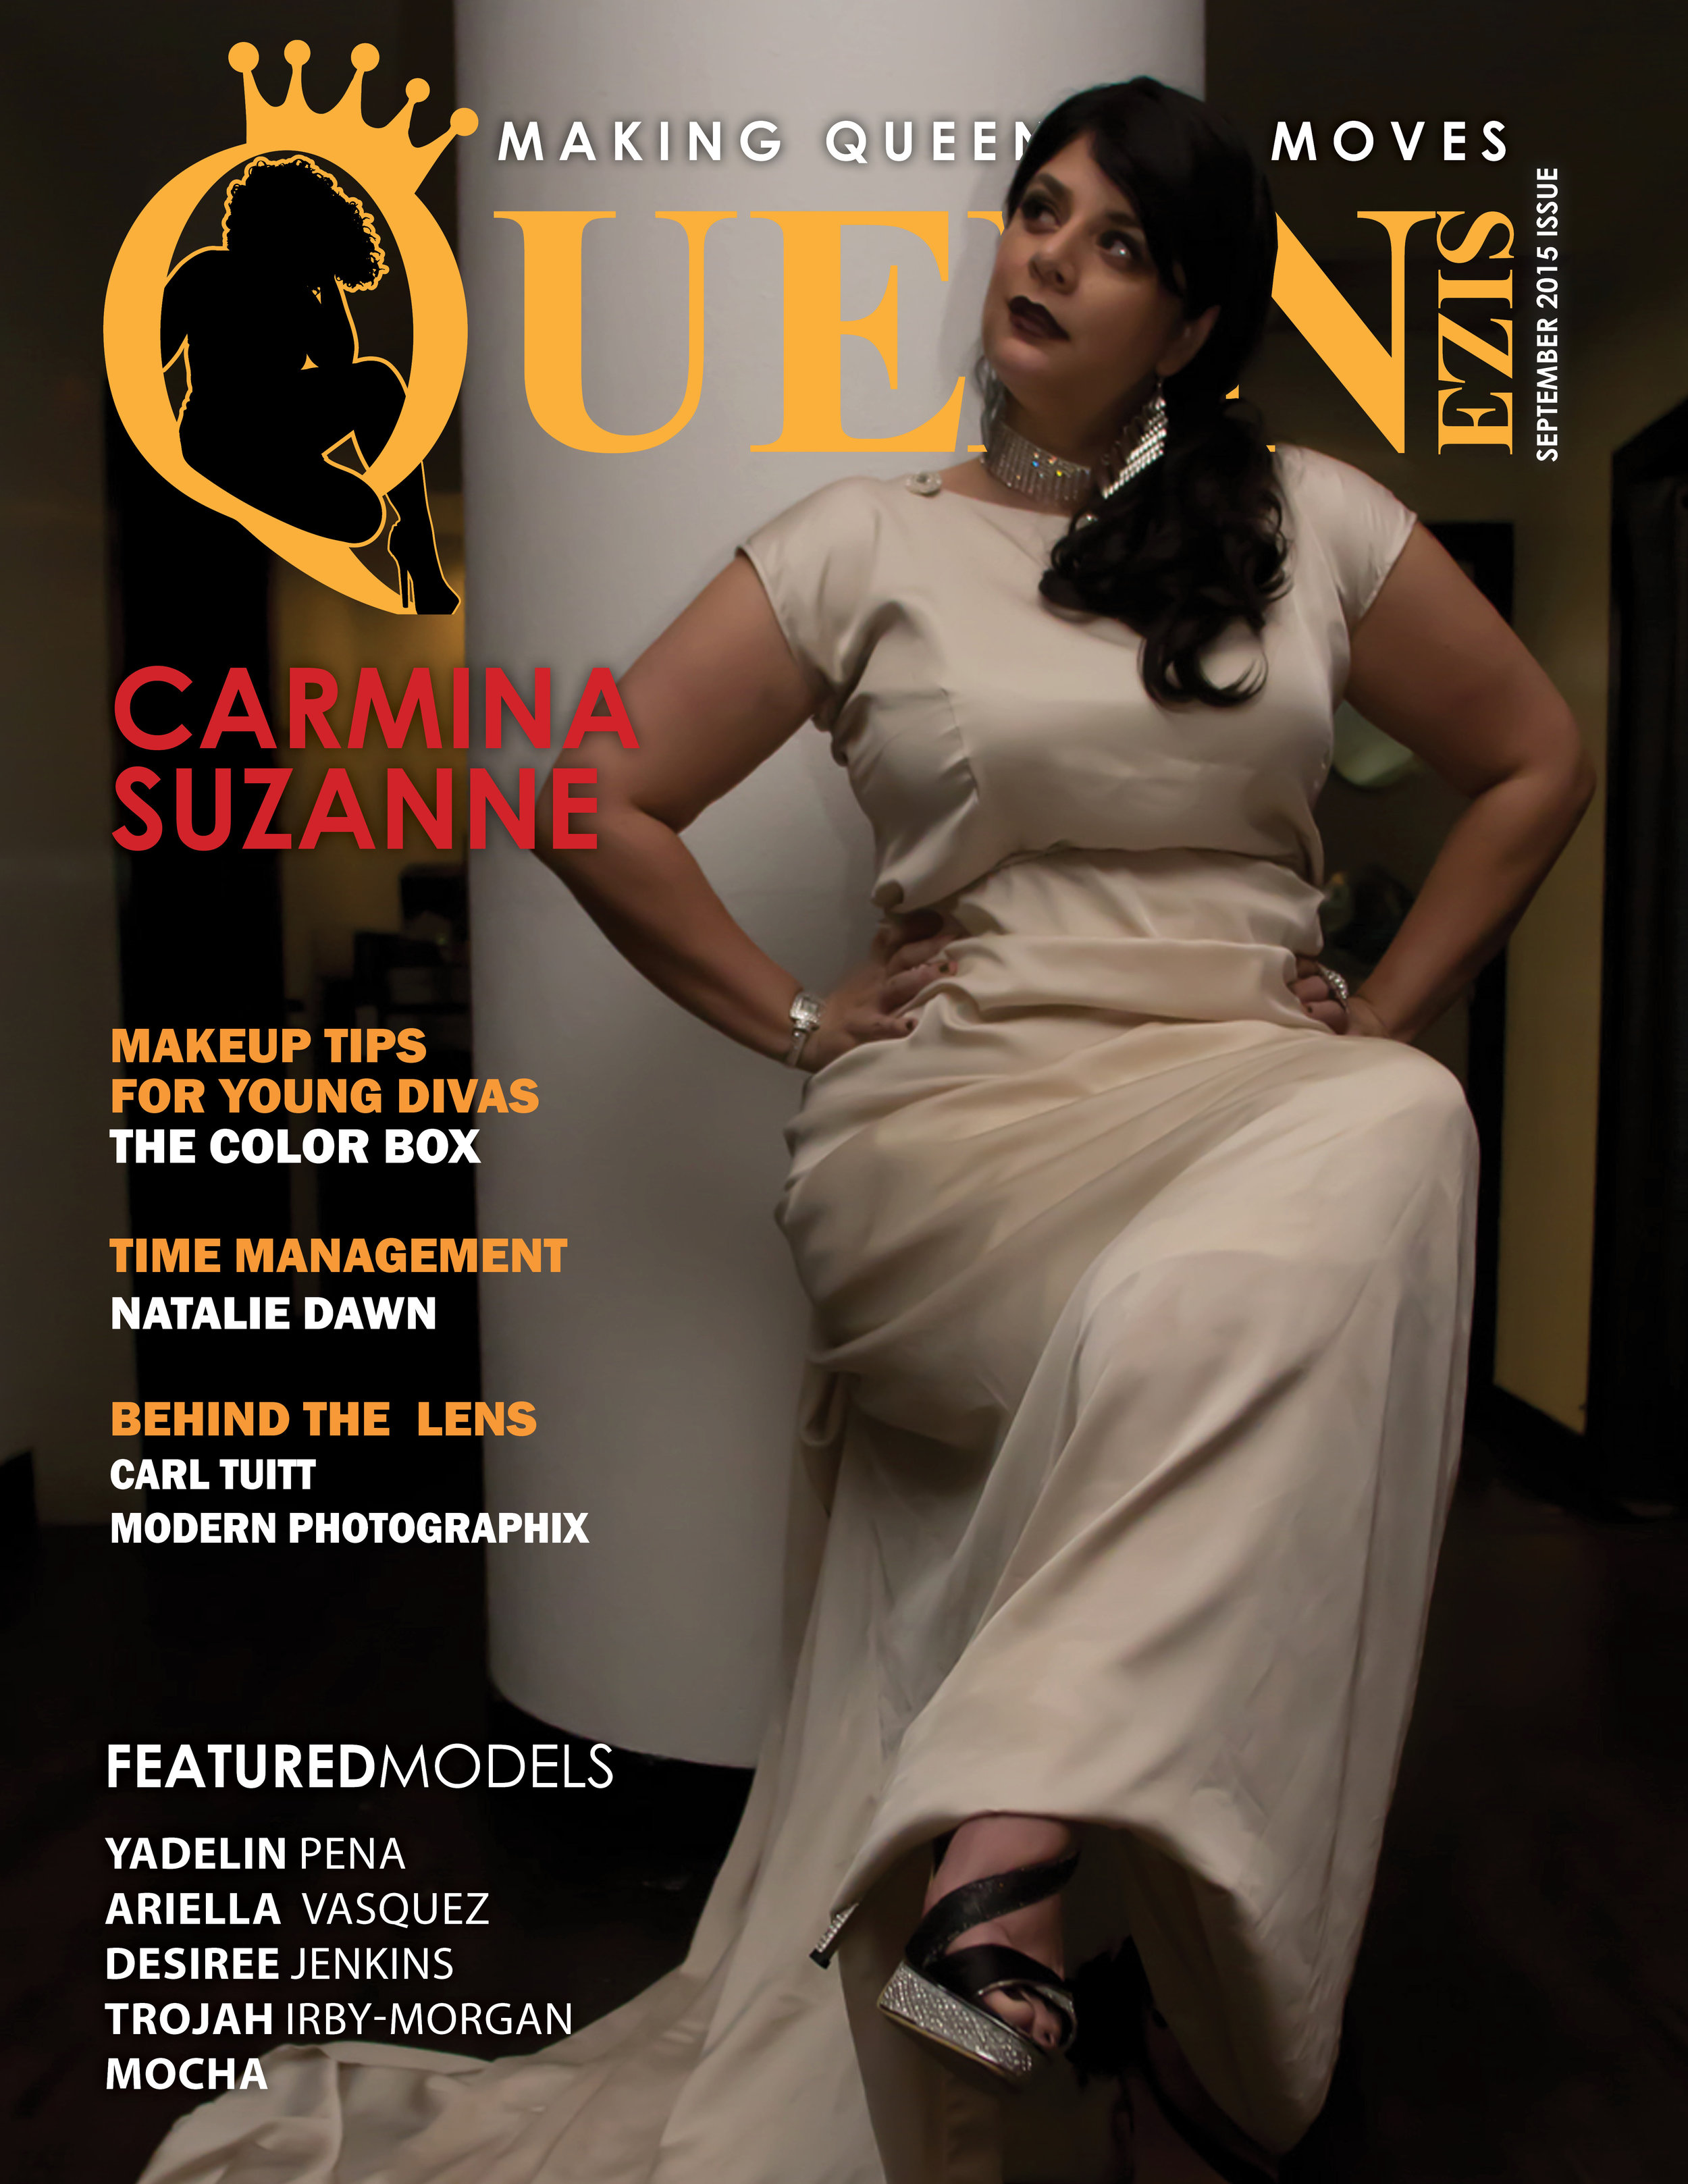 Queen Size cover large.jpg